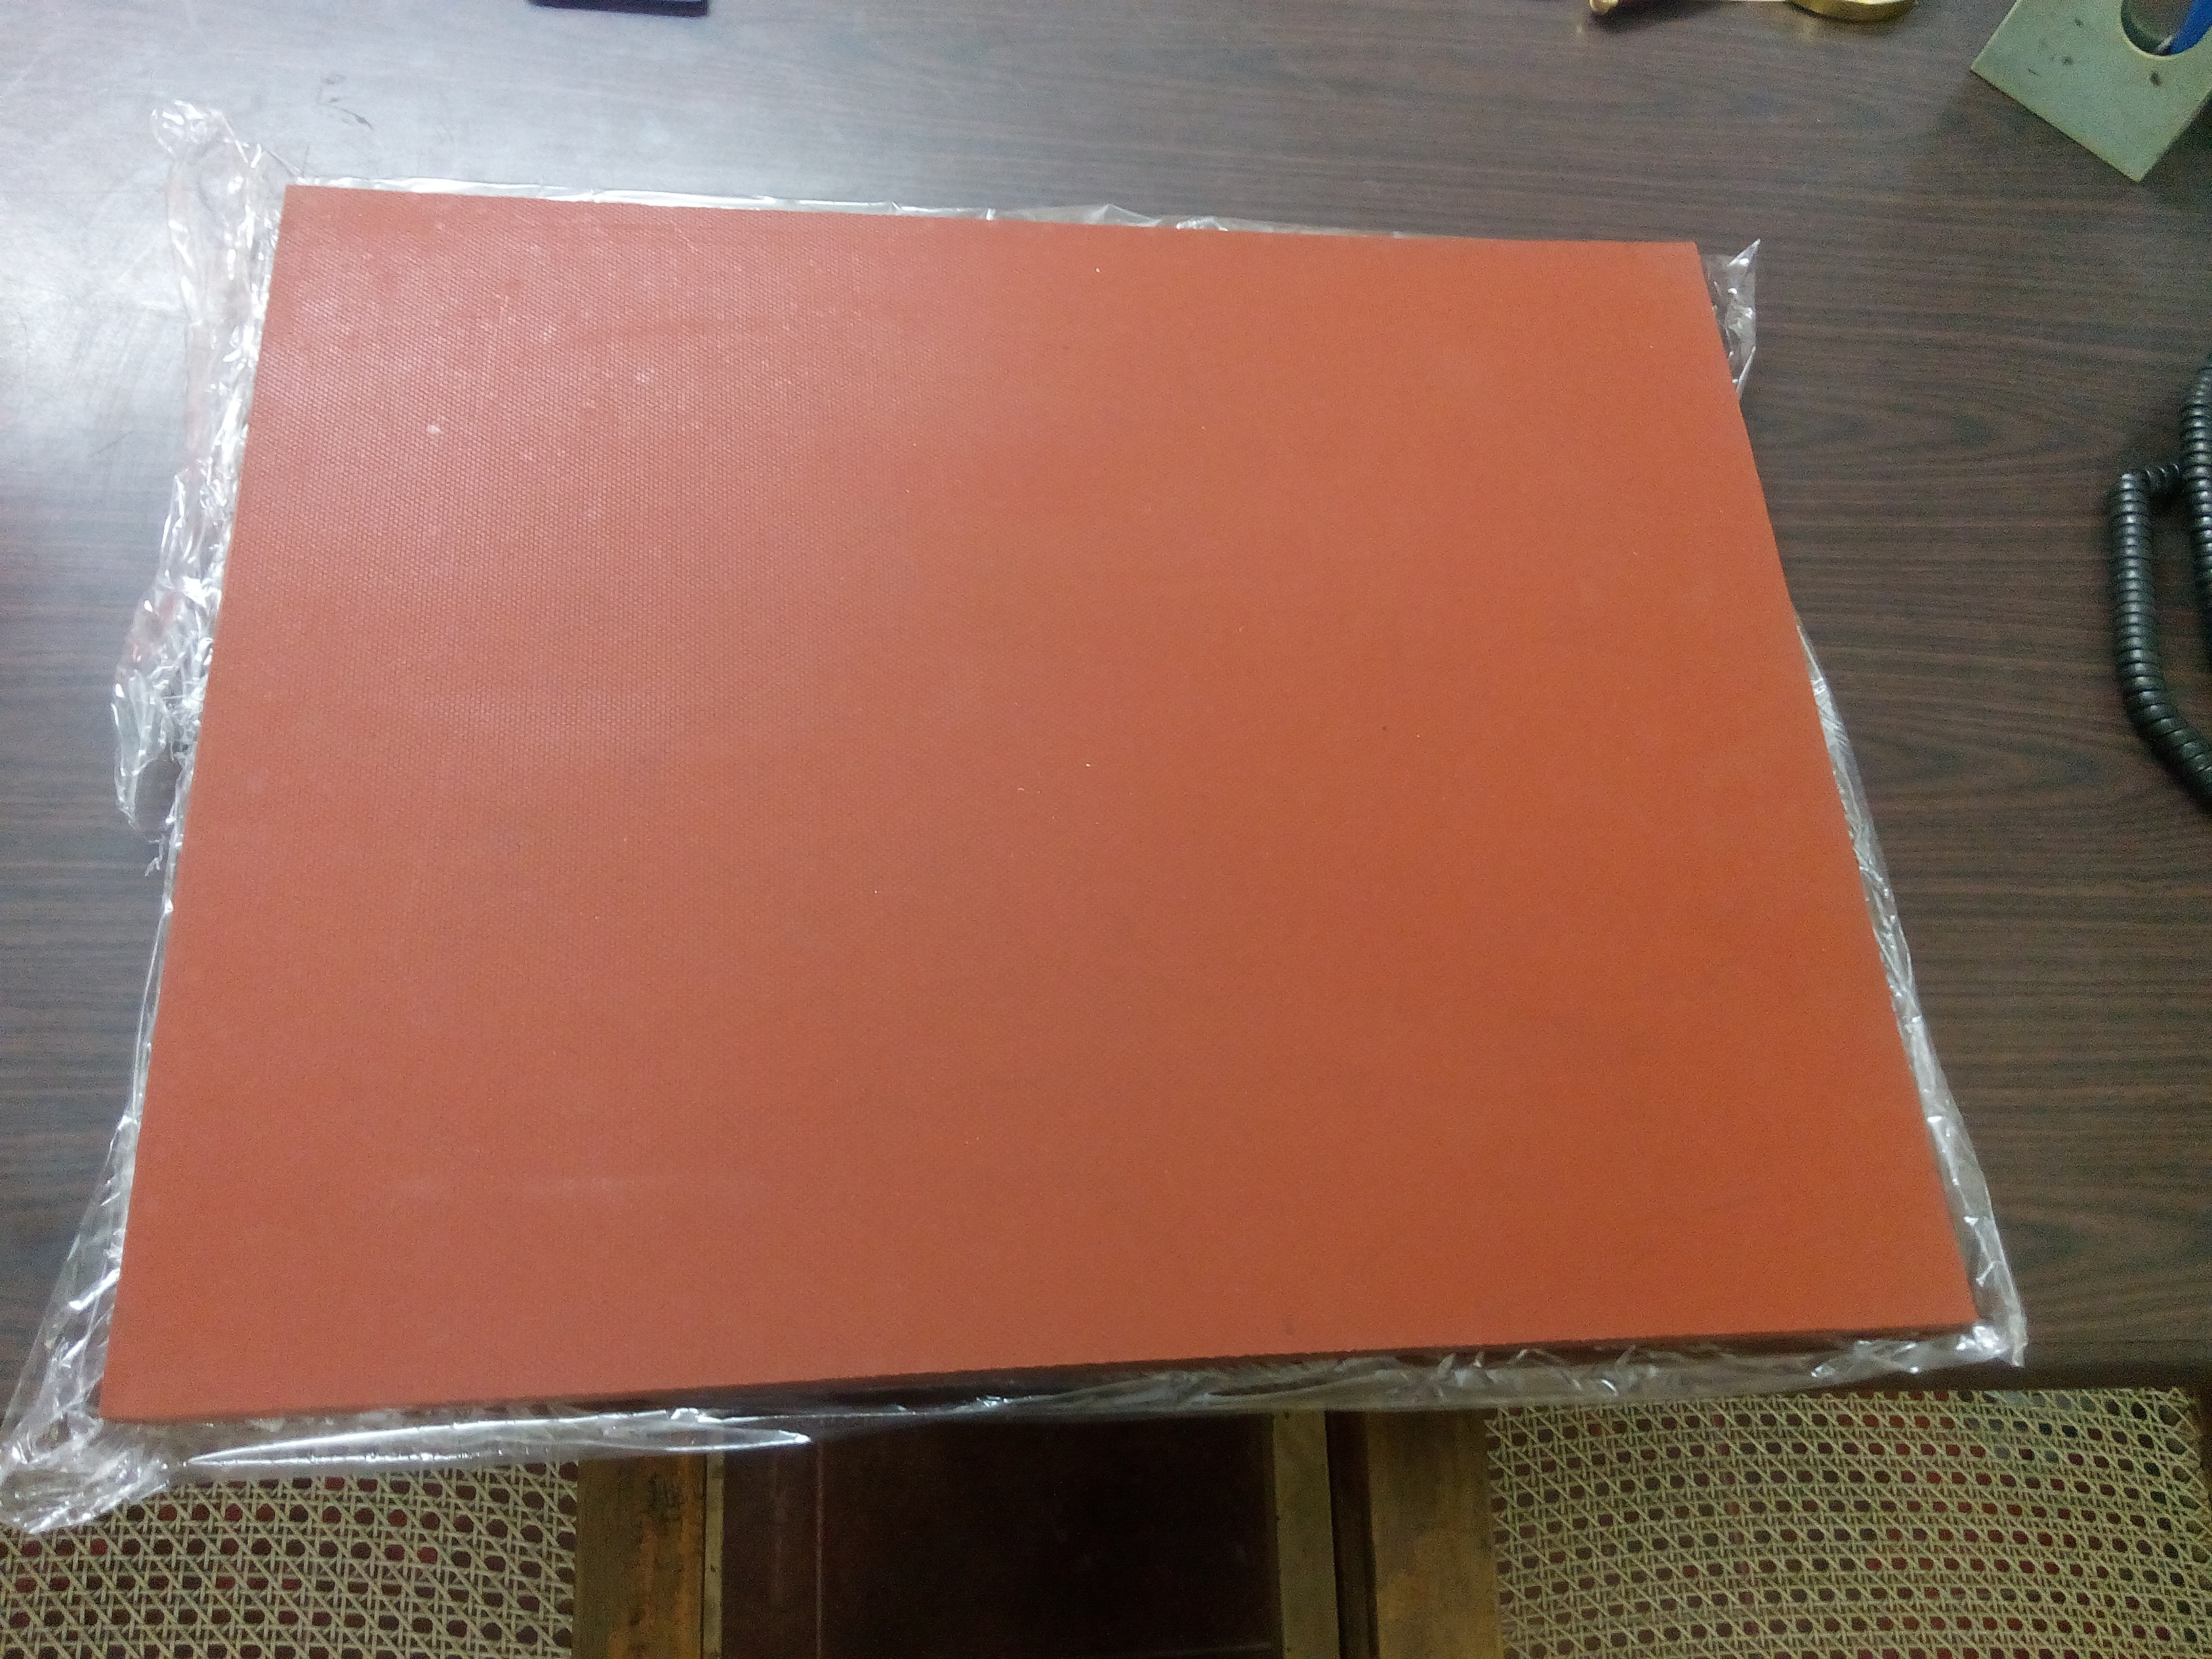 Silicon rubber sheet  Silicone Rubber Sheet-of size 420mmx520mmx12mm , 30